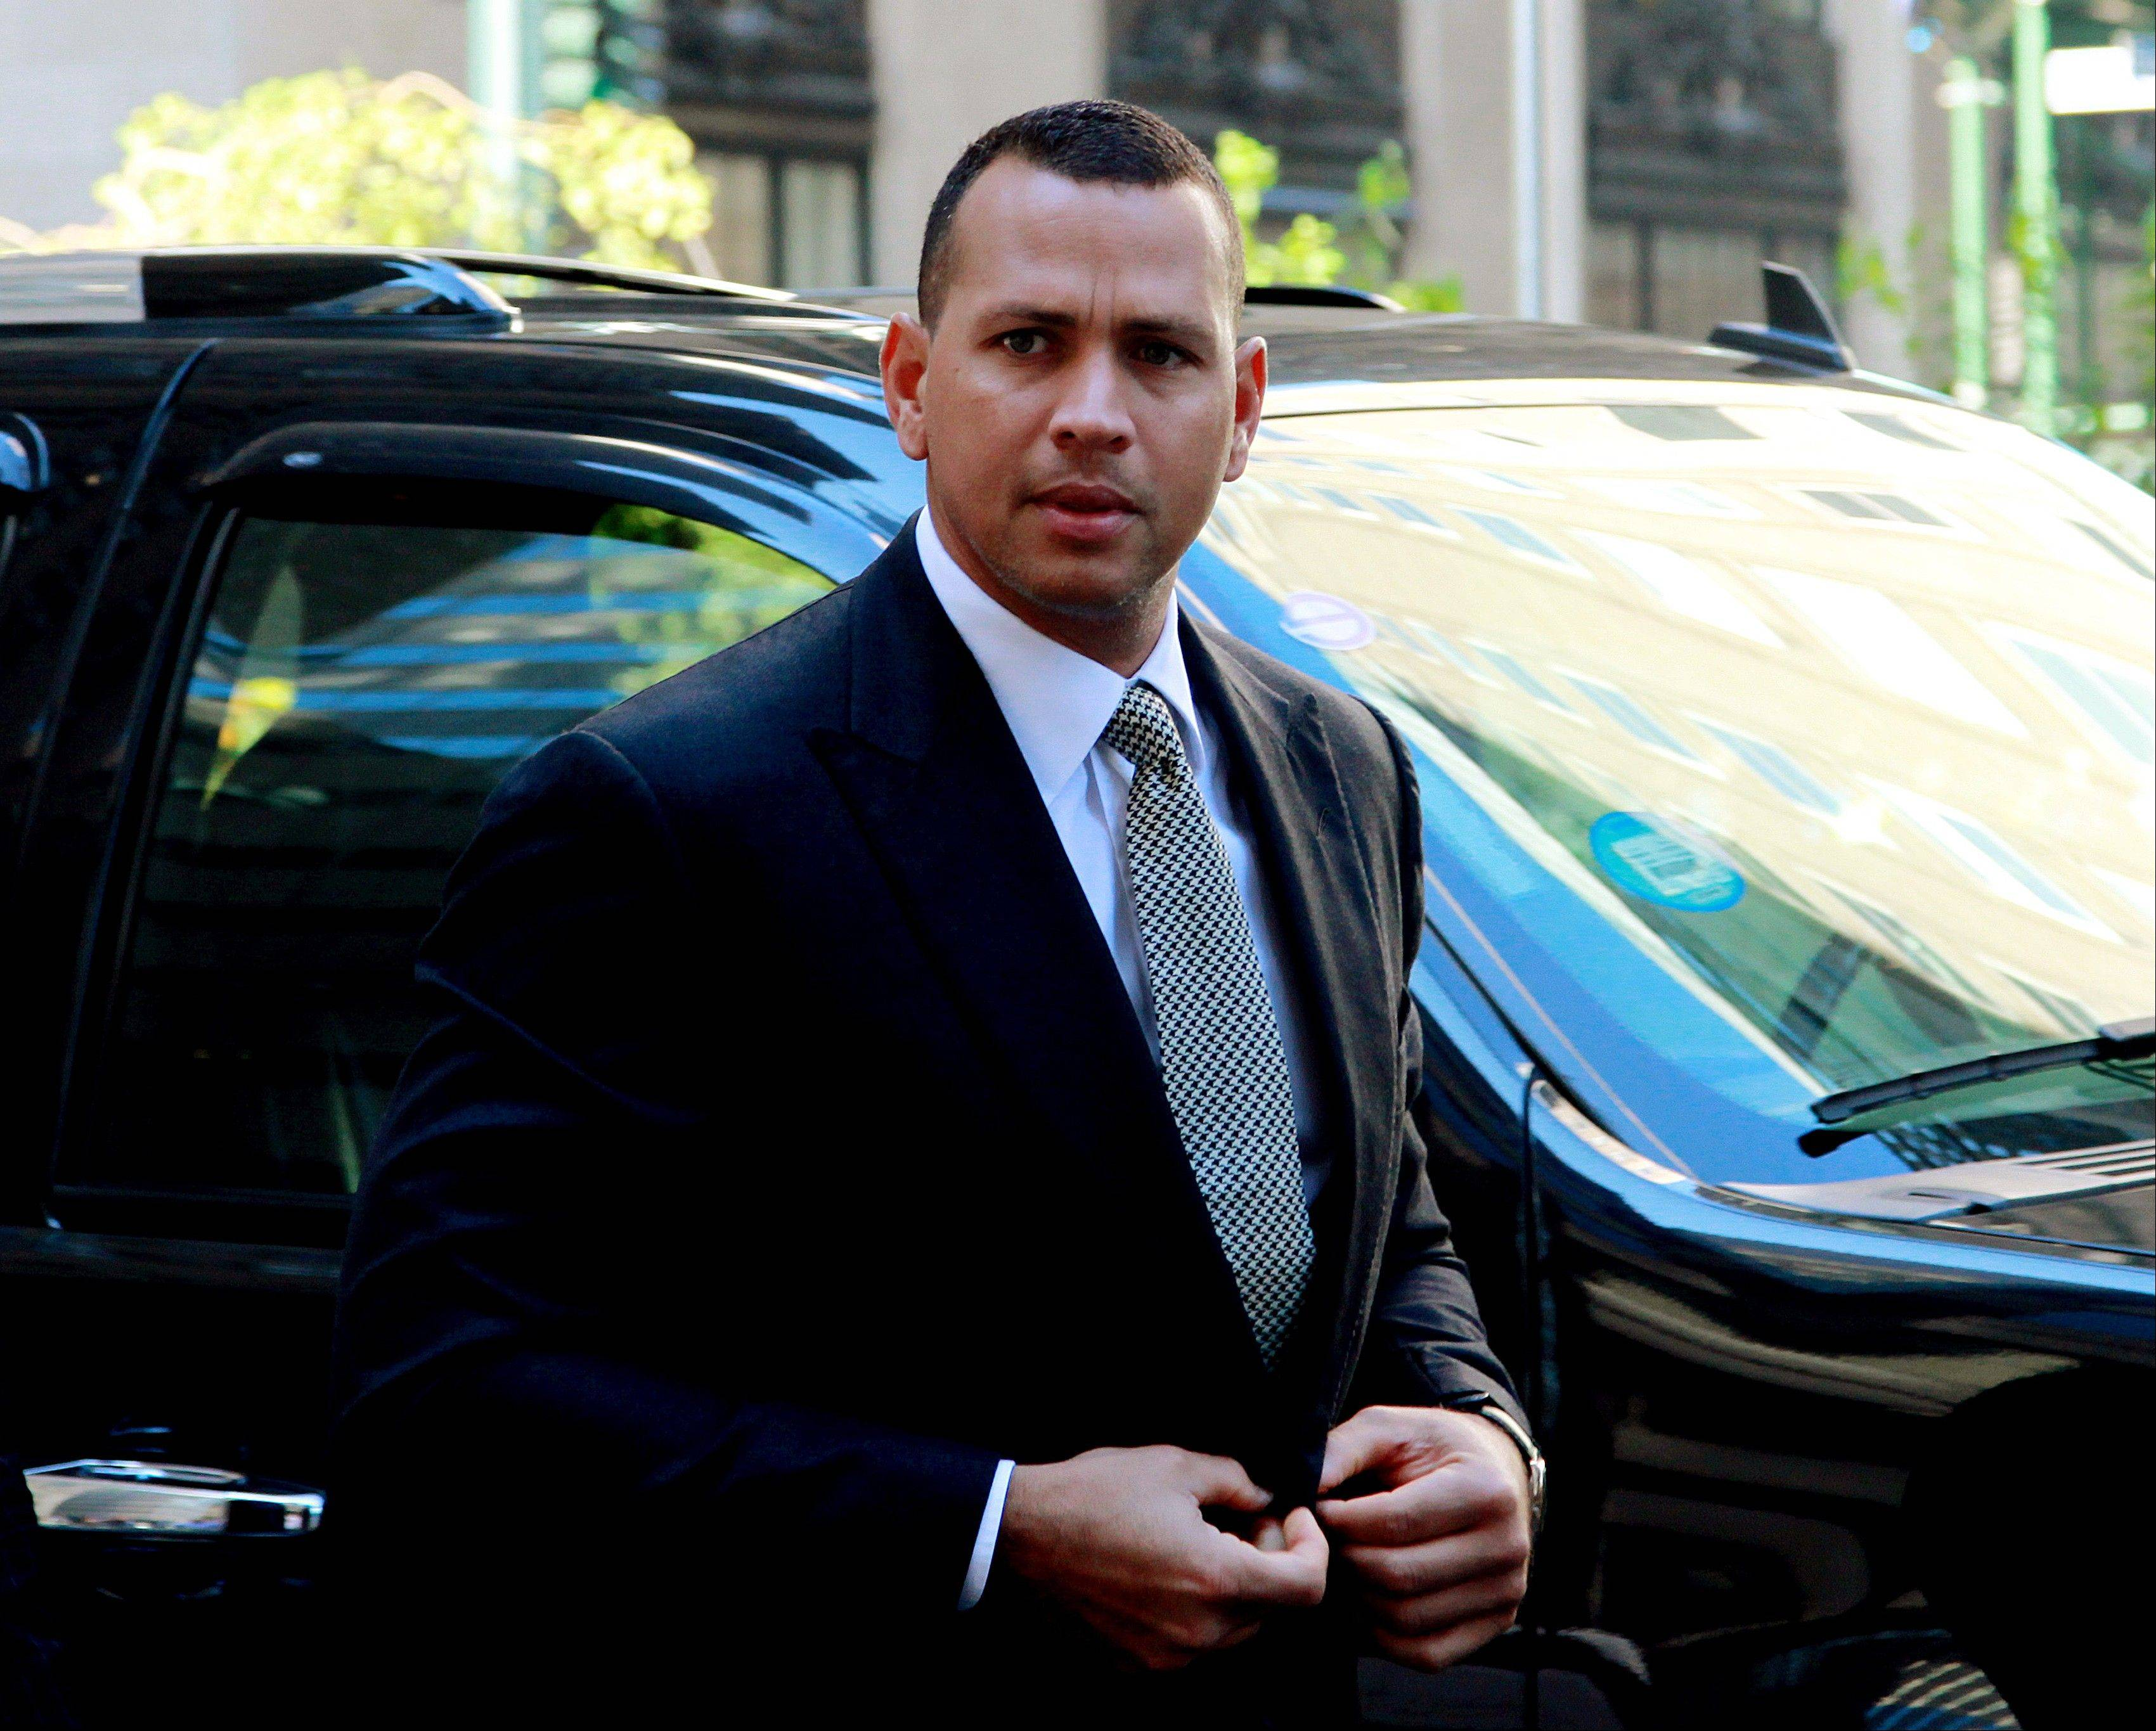 This Oct. 1, 2013, file photo shows New York Yankees� Alex Rodriguez arrivng at the offices of Major League Baseball in New York. Rodriguez sued Major League Baseball and its players� union Monday, Jan. 13, 2014 seeking to overturn a season-long suspension imposed by an arbitrator who ruled there was �clear and convincing evidence� he used three banned substances and twice tried to obstruct the sport�s drug investigation.